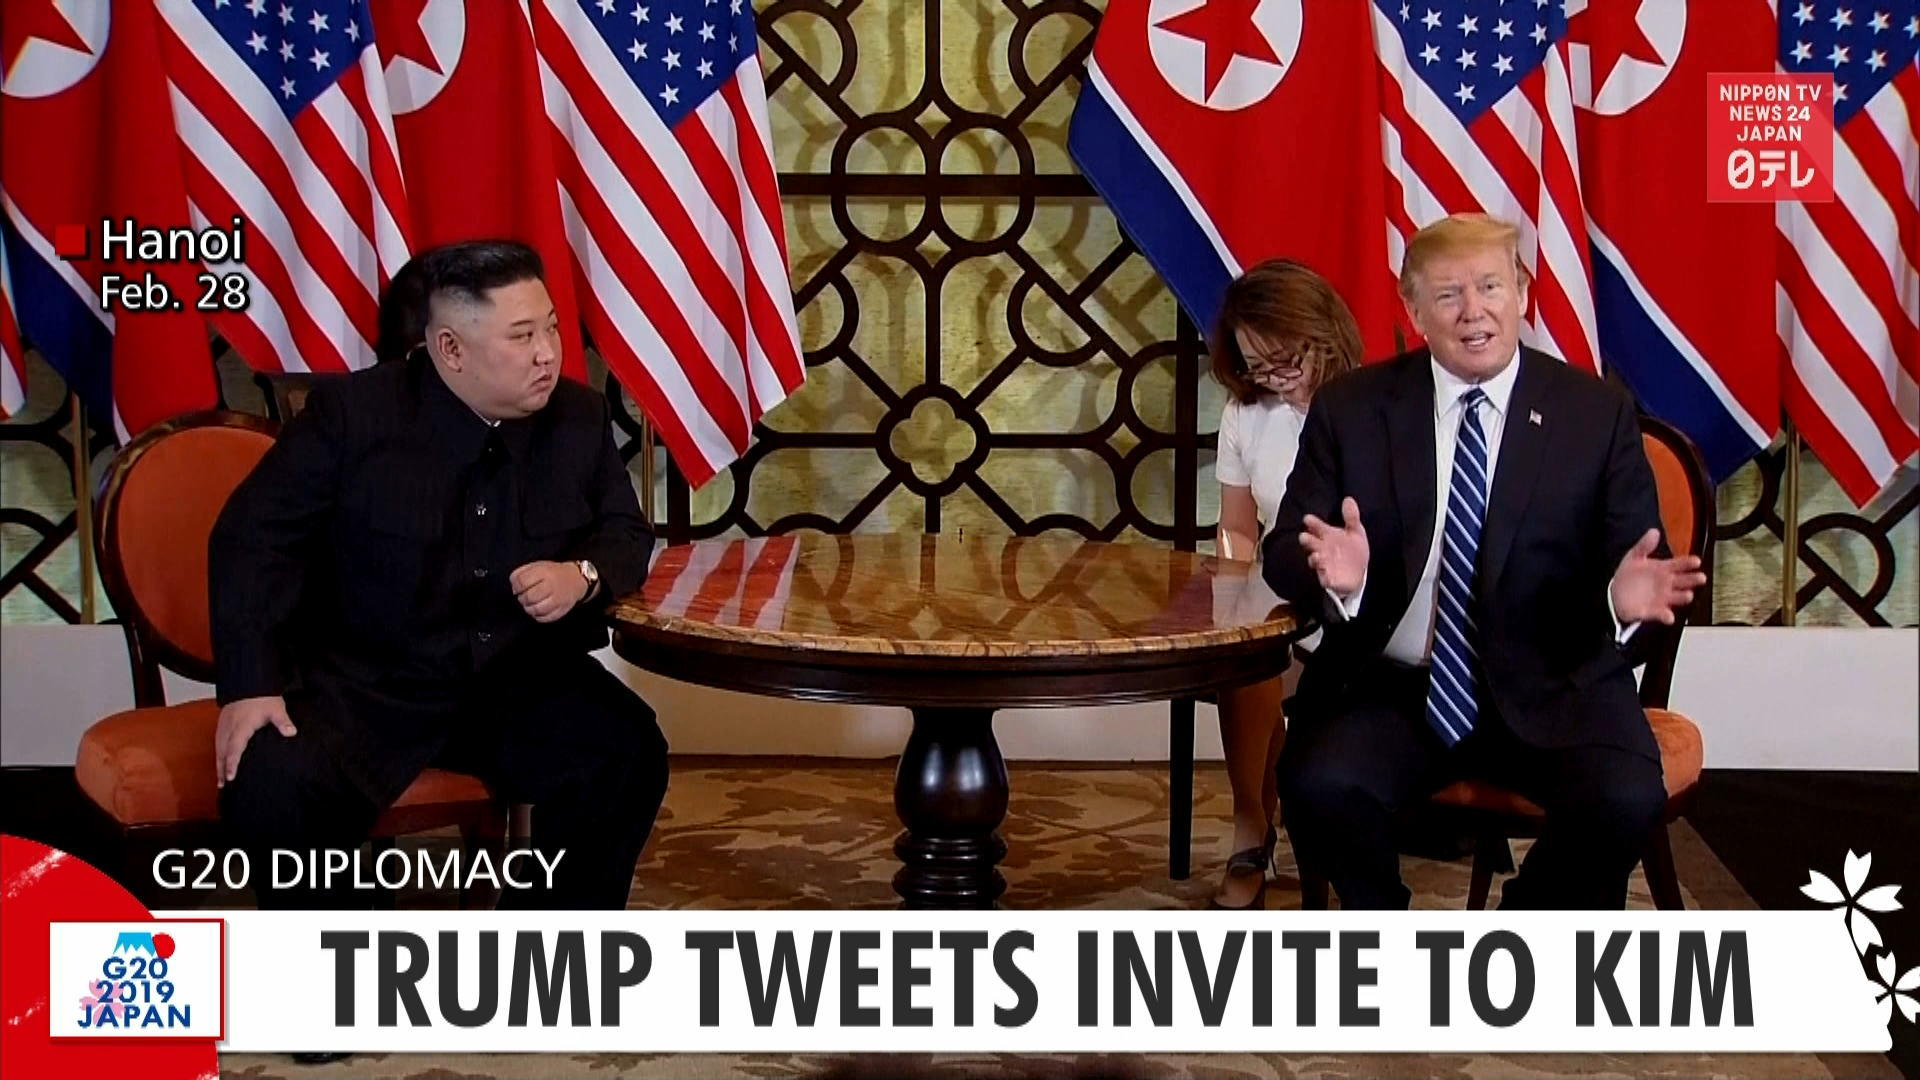 G20: Trump tweets to invite Kim